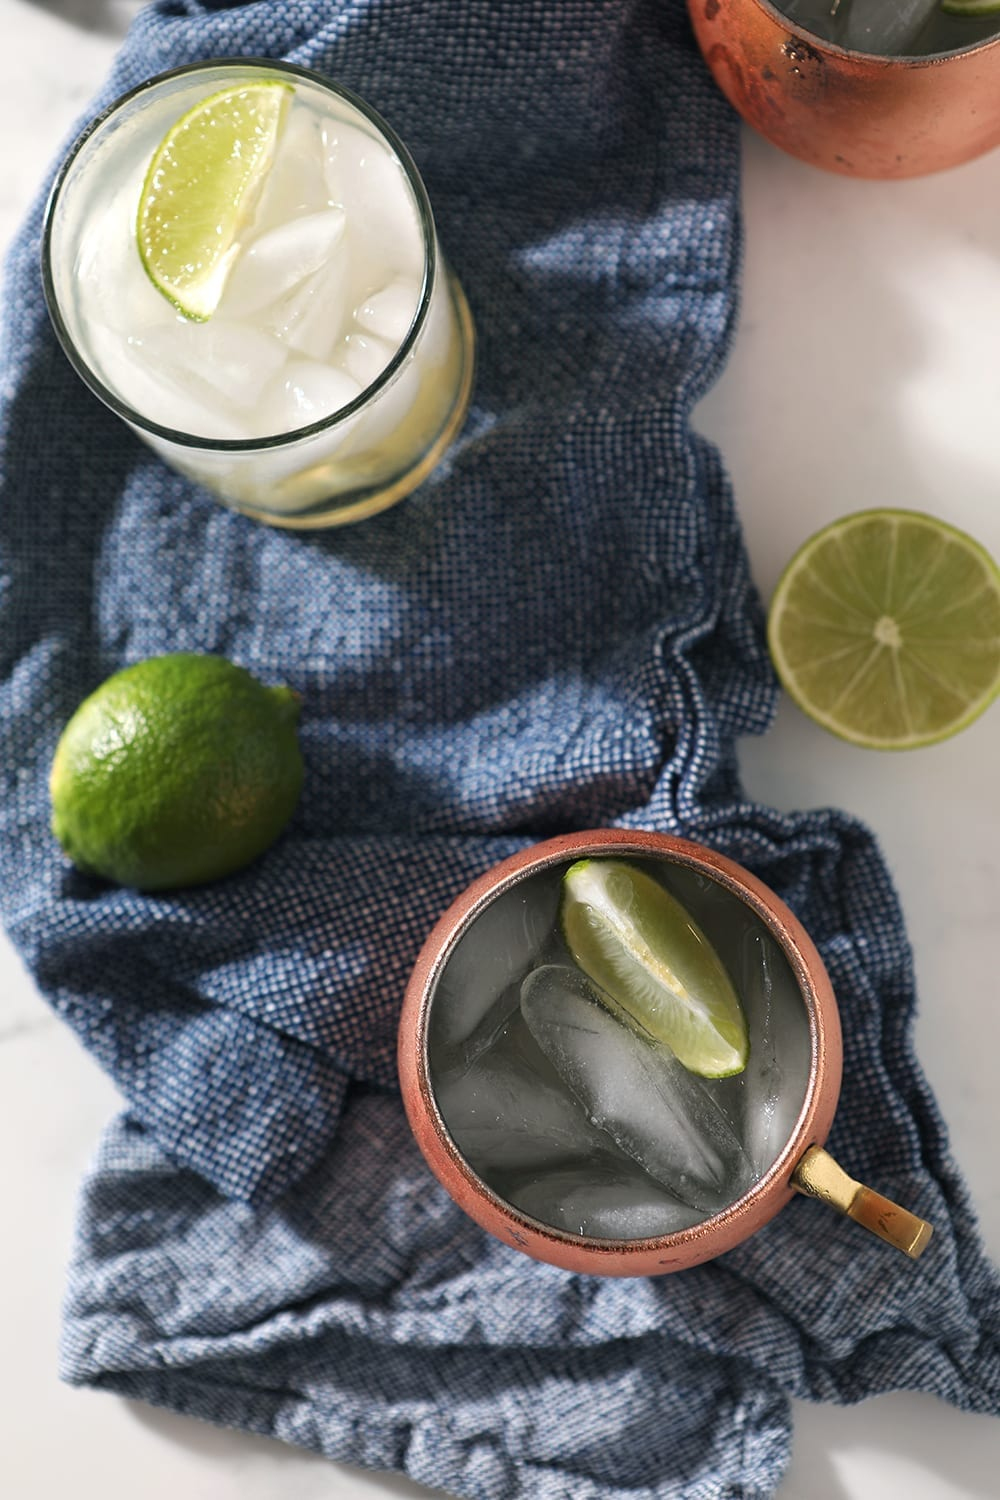 Overhead of three drinks on a blue towel, with limes scattered around them